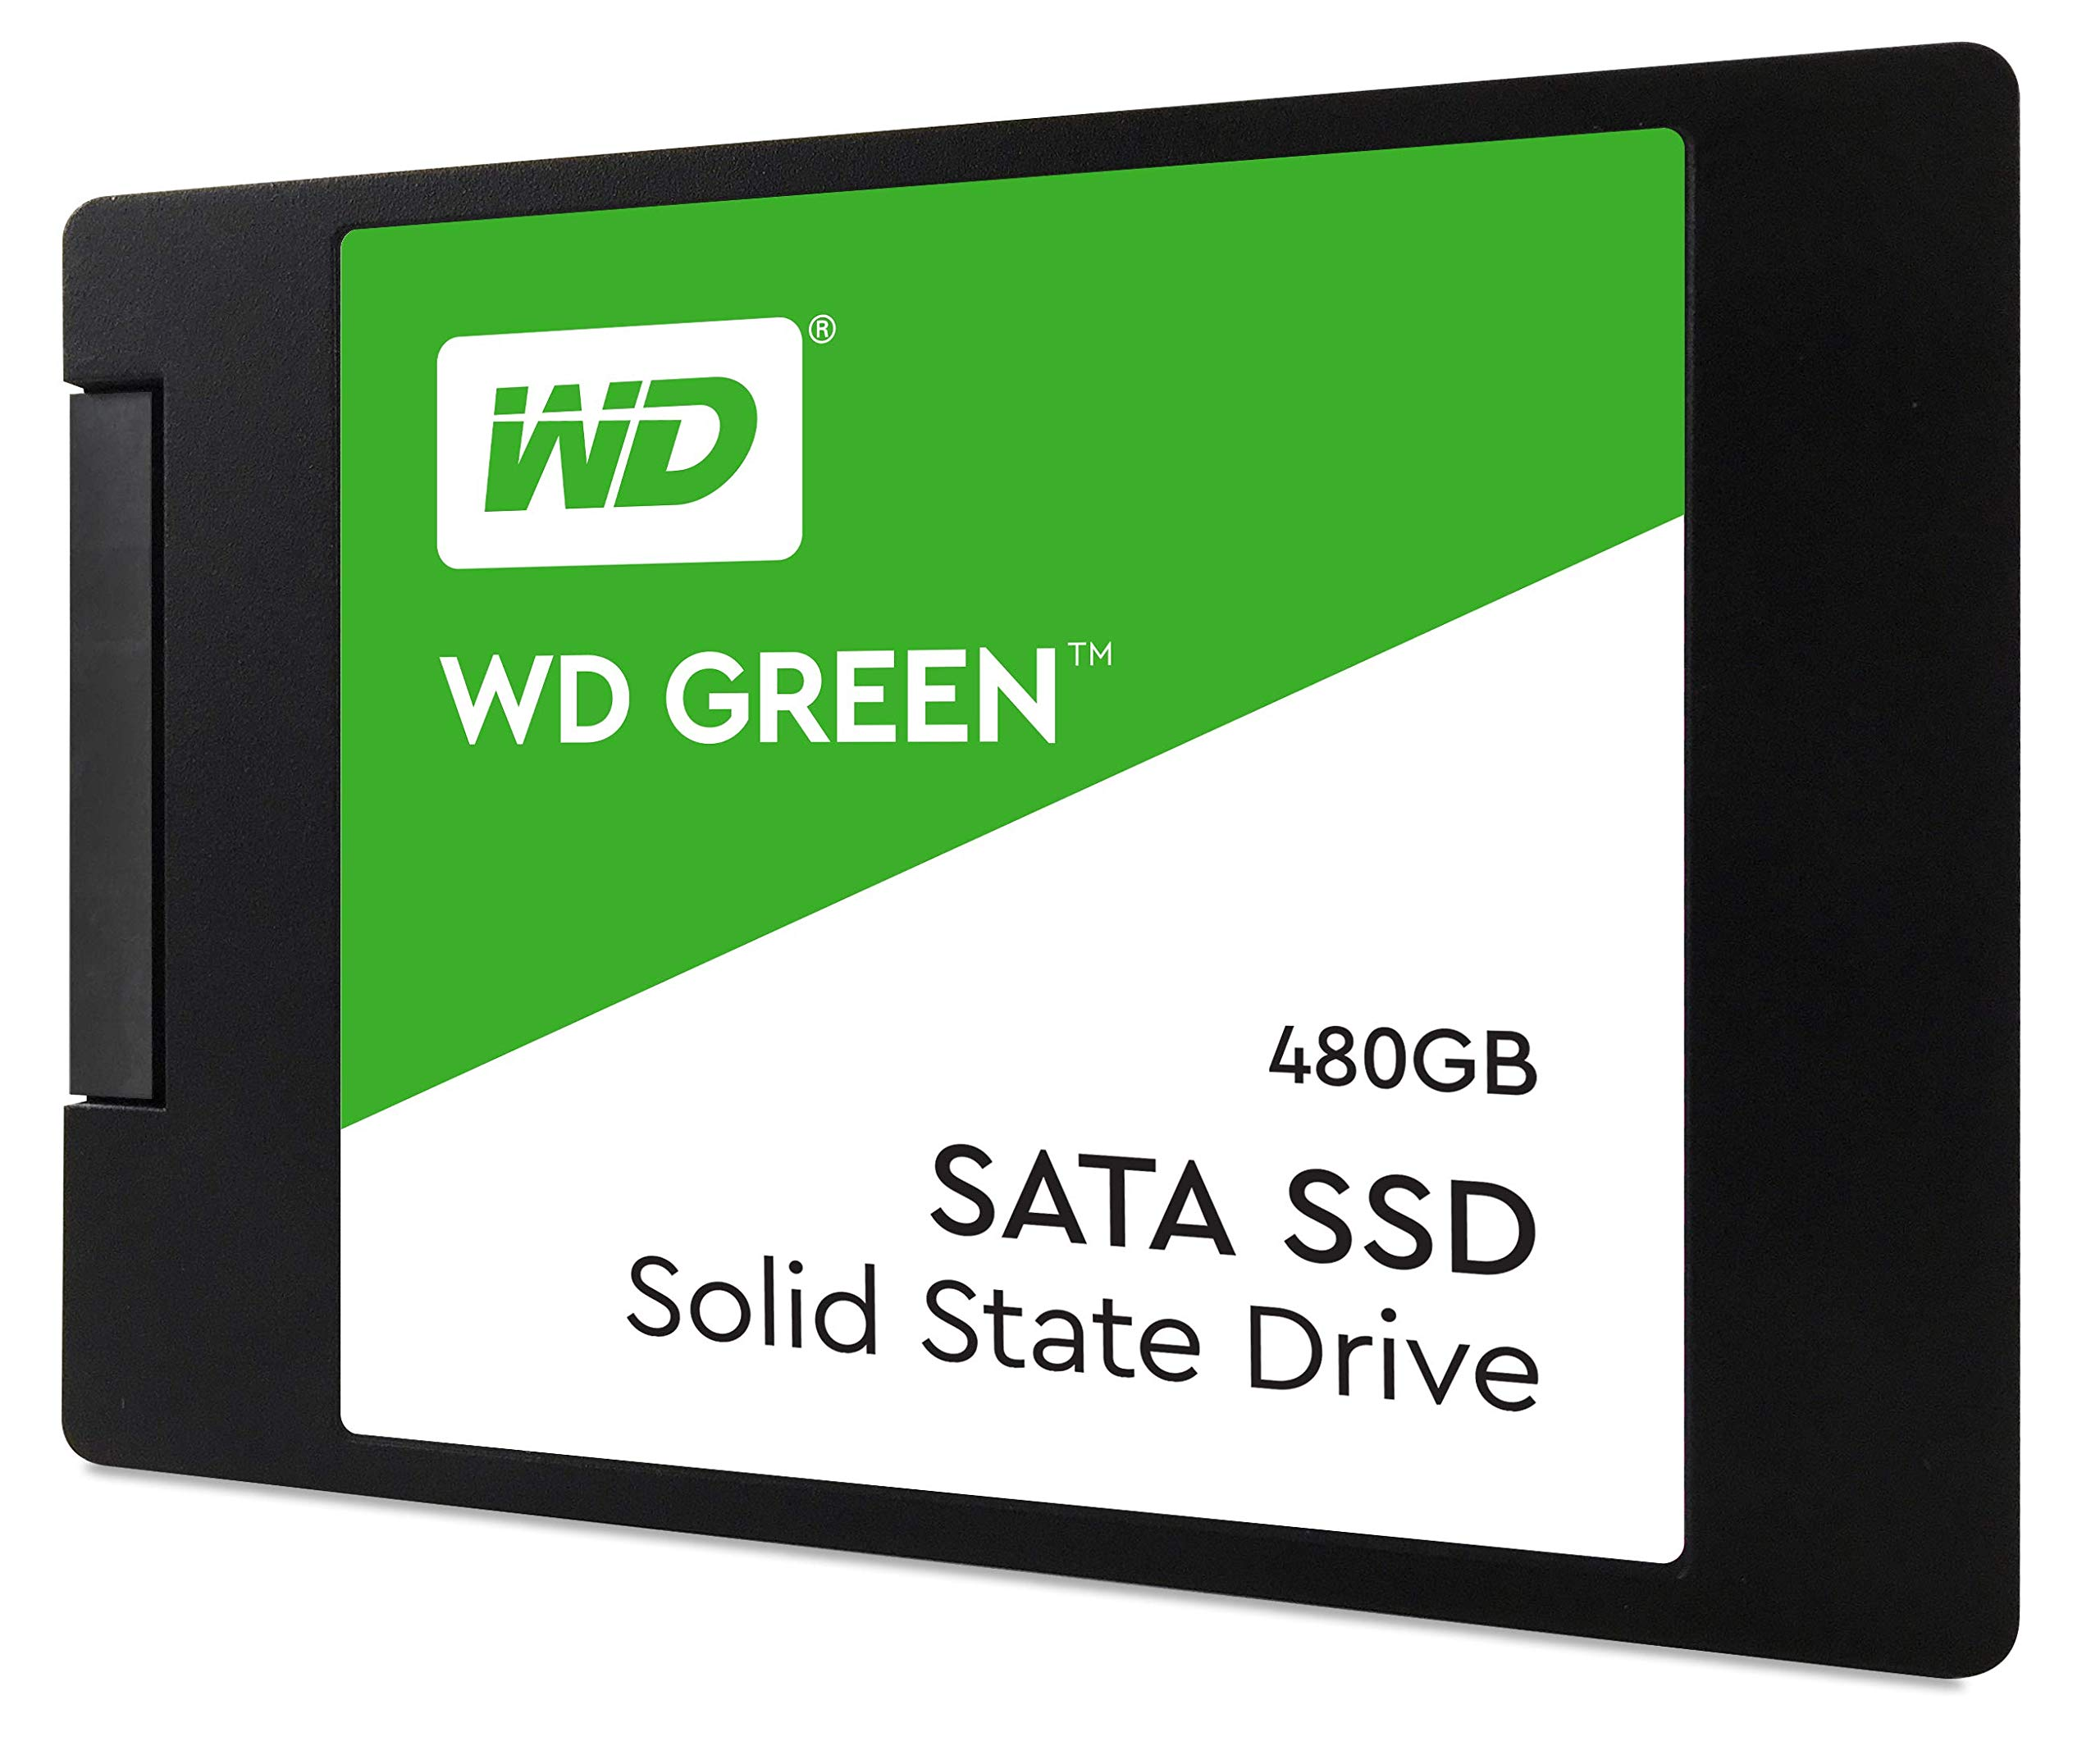 WD Green 480GB Internal PC SSD - SATA III 6 Gb/s, 2.5''/7mm - WDS480G2G0A